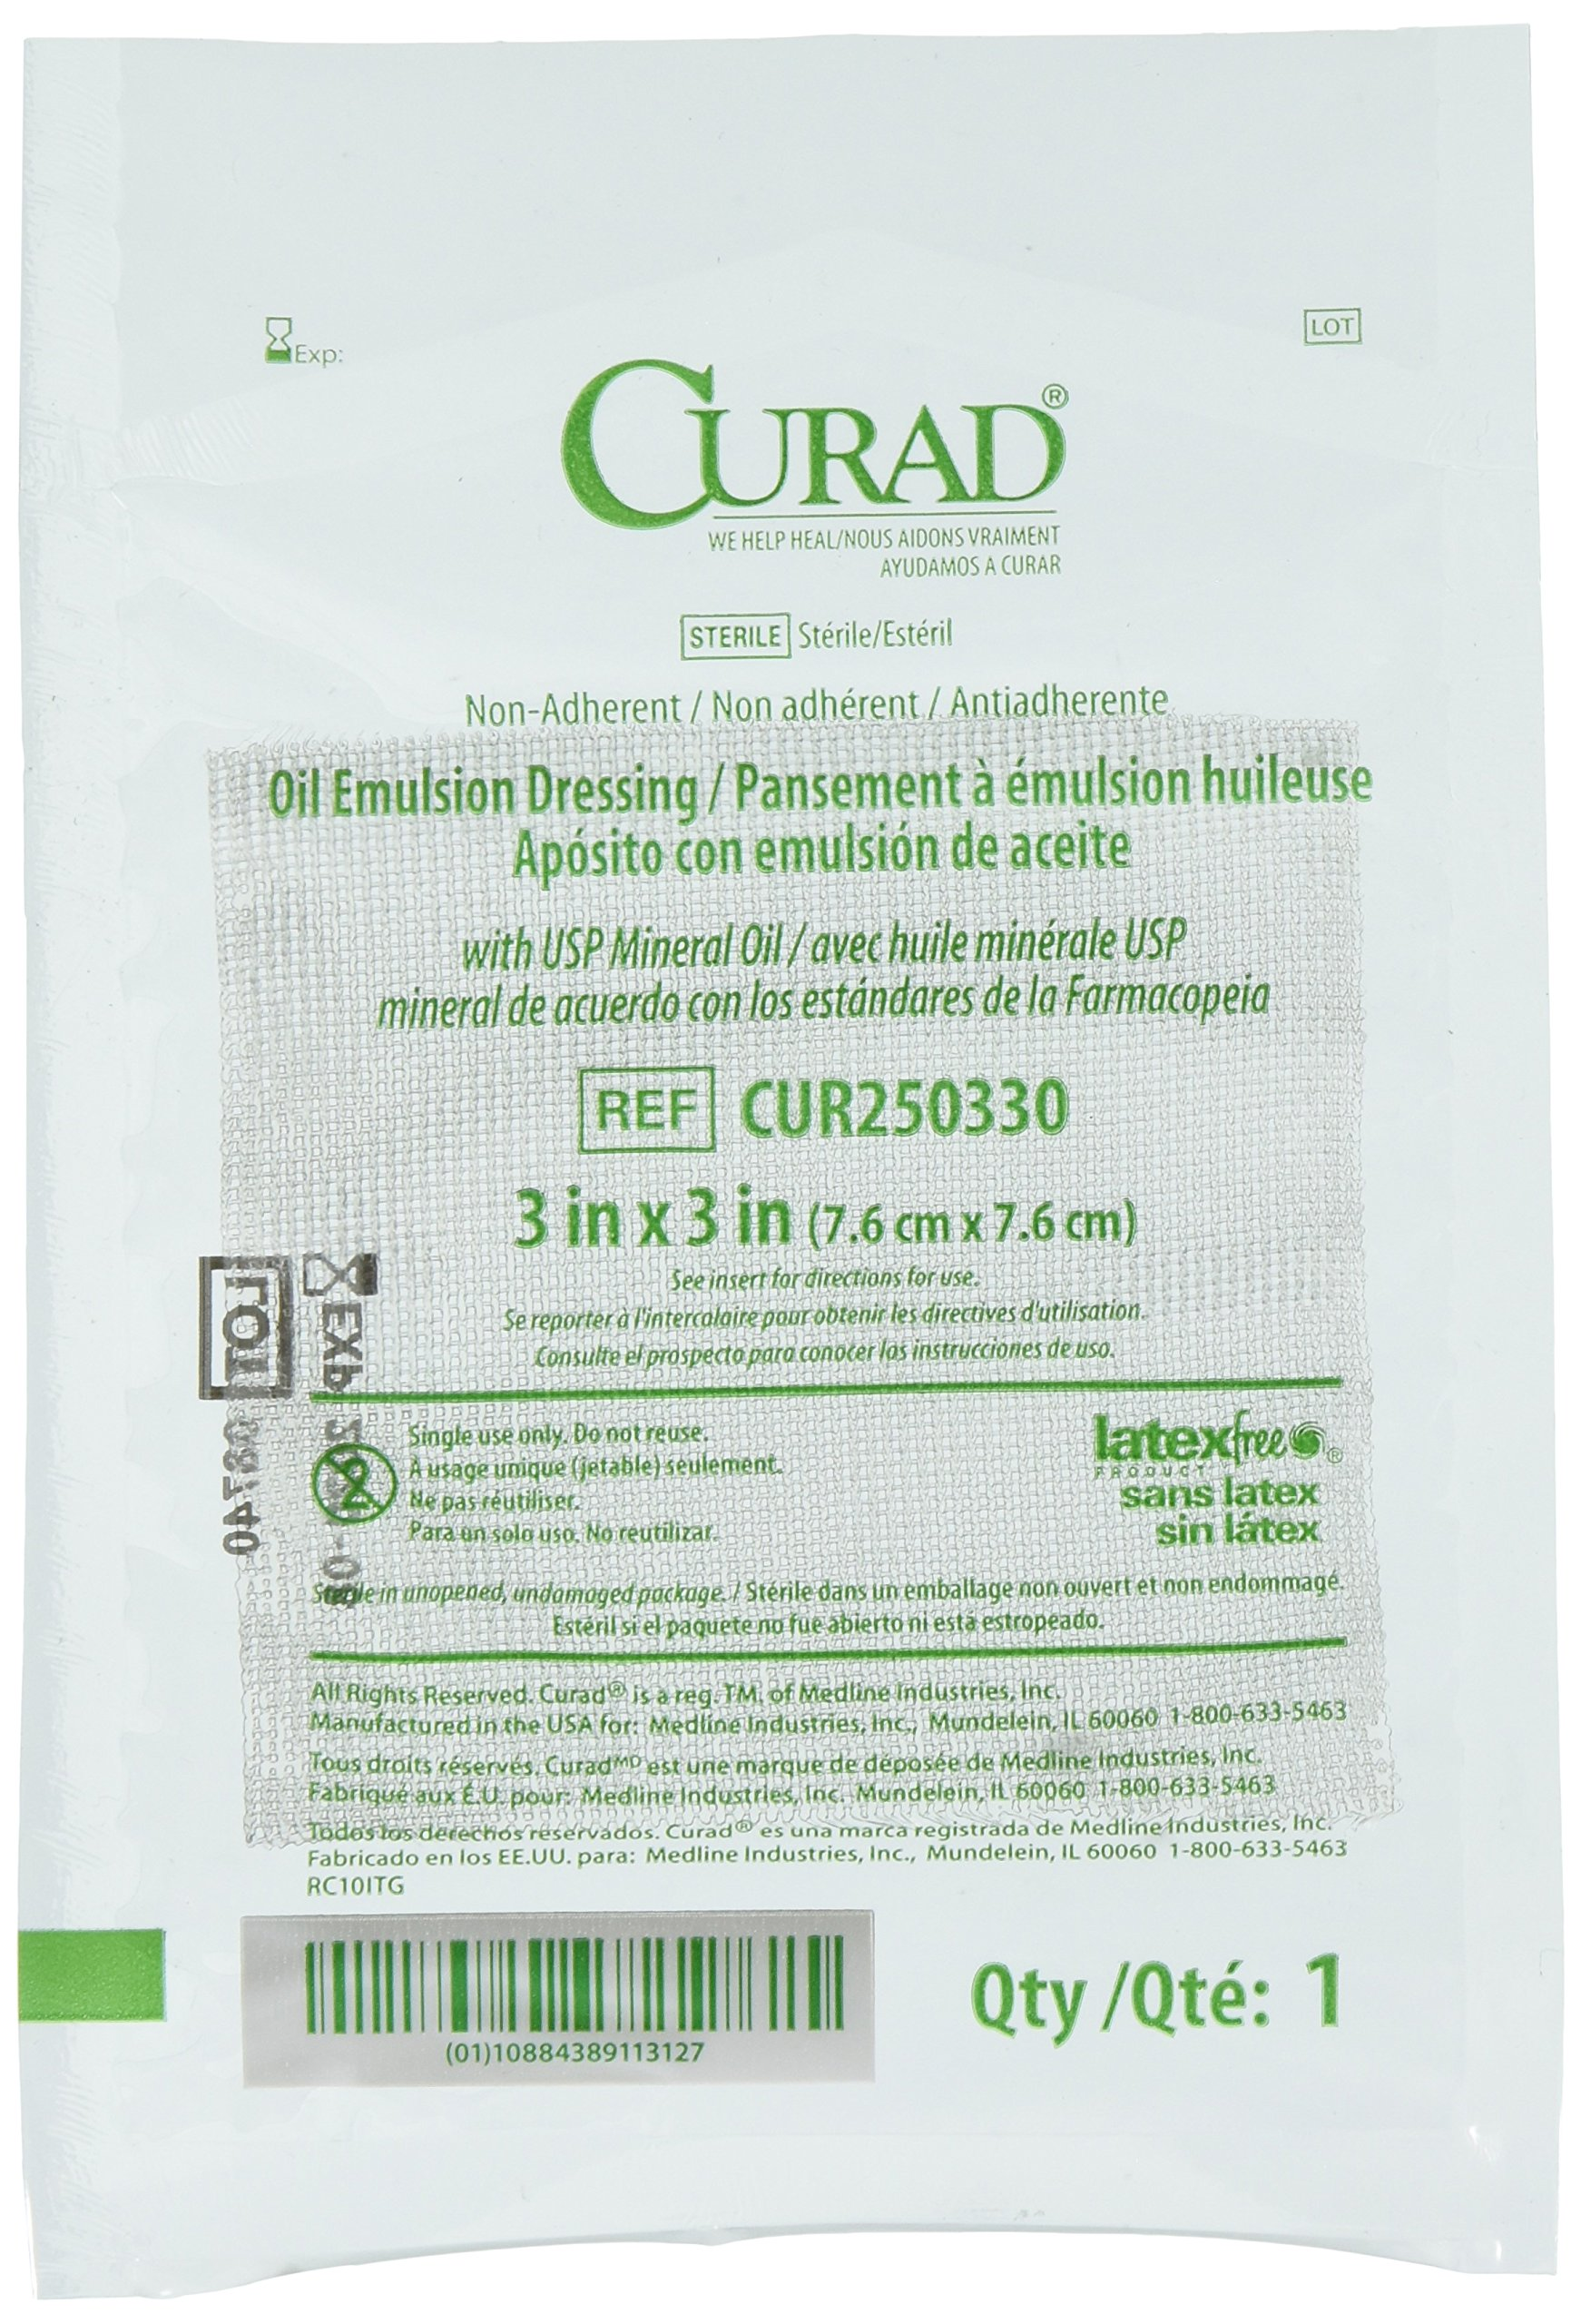 Curad Sterile Oil Emulsion Non-Adherent Gauze Dressing, 3x3 inches, for Minor Burns, Abrasions, 50 Count by Curad